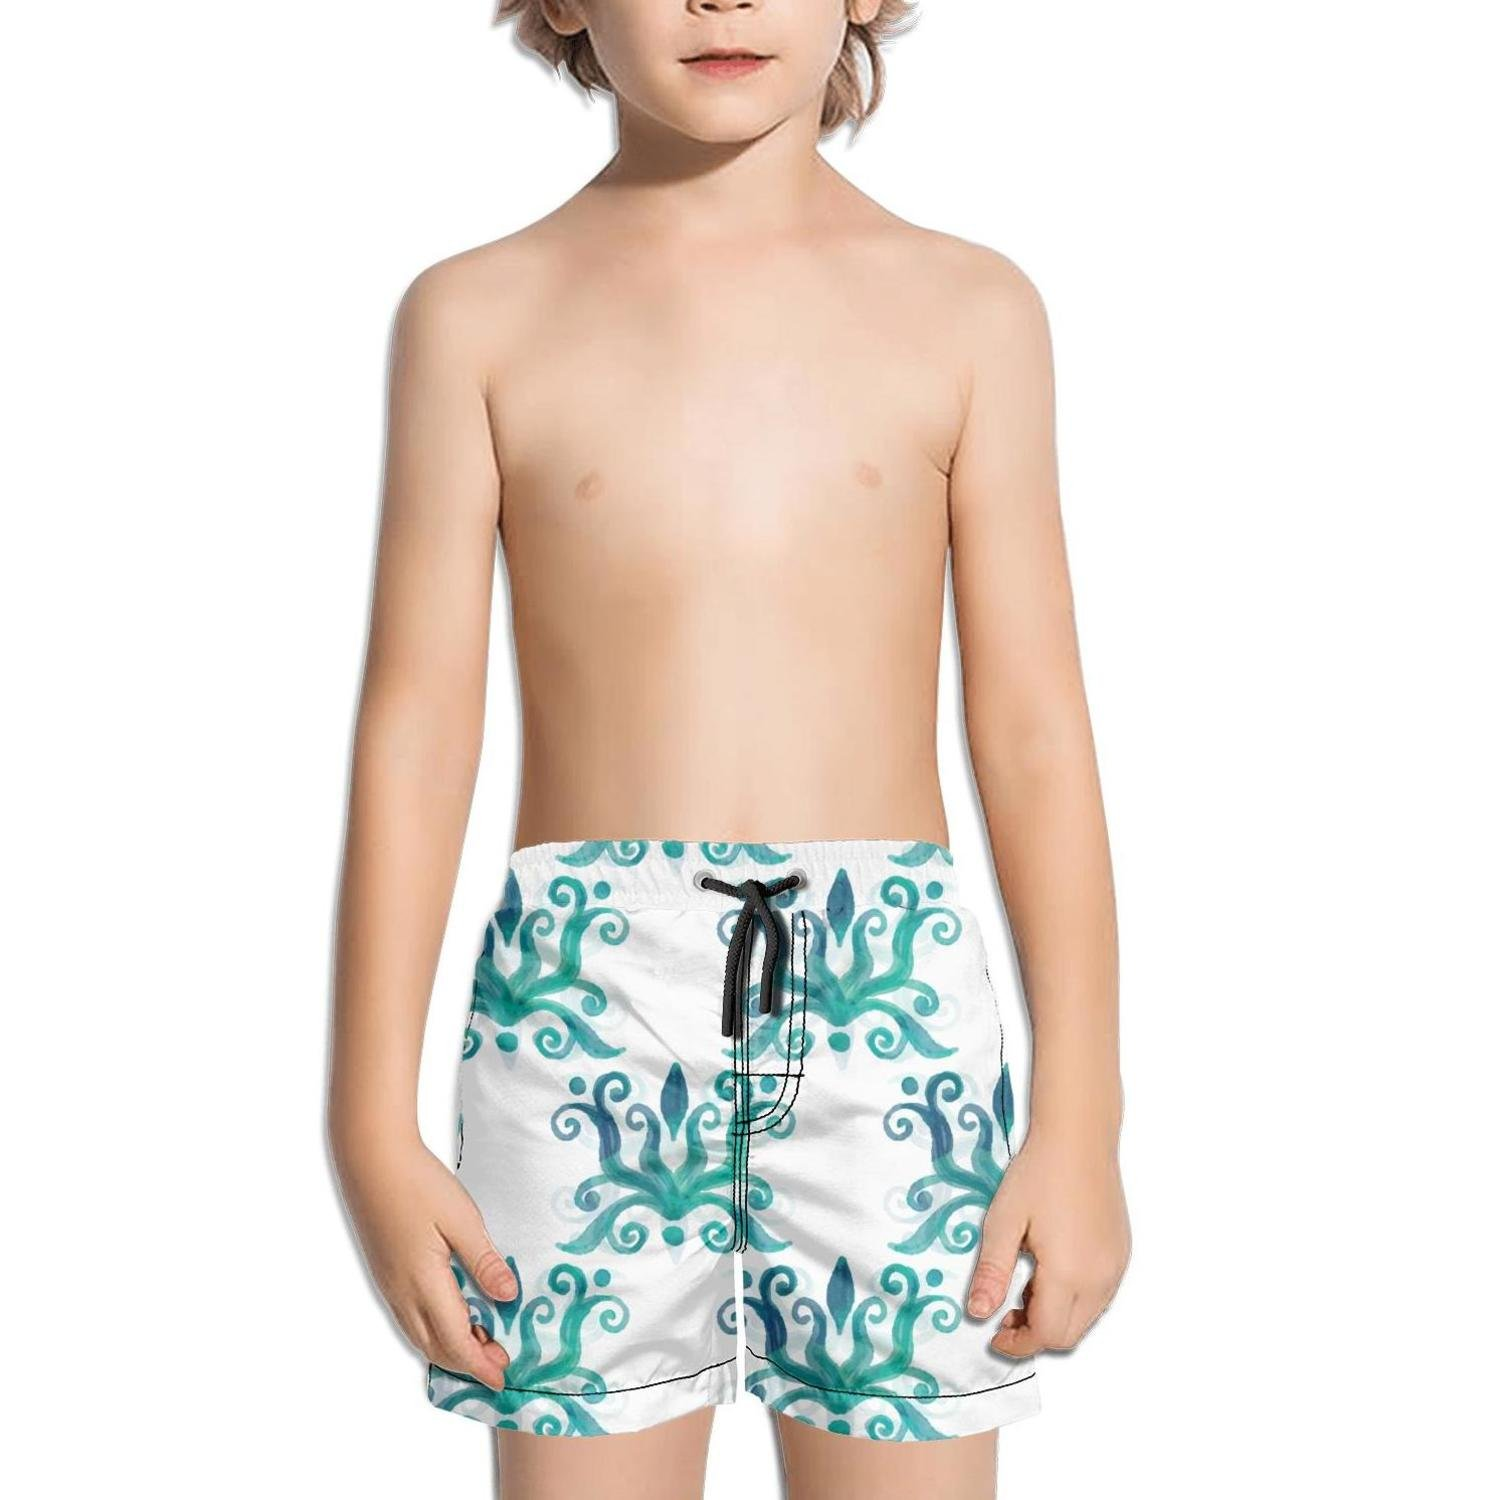 Lenard Hughes Boys Quick Dry Beach Shorts with Pockets Watercolor Blue Ethnic Fabric Swim Trunks for Summer